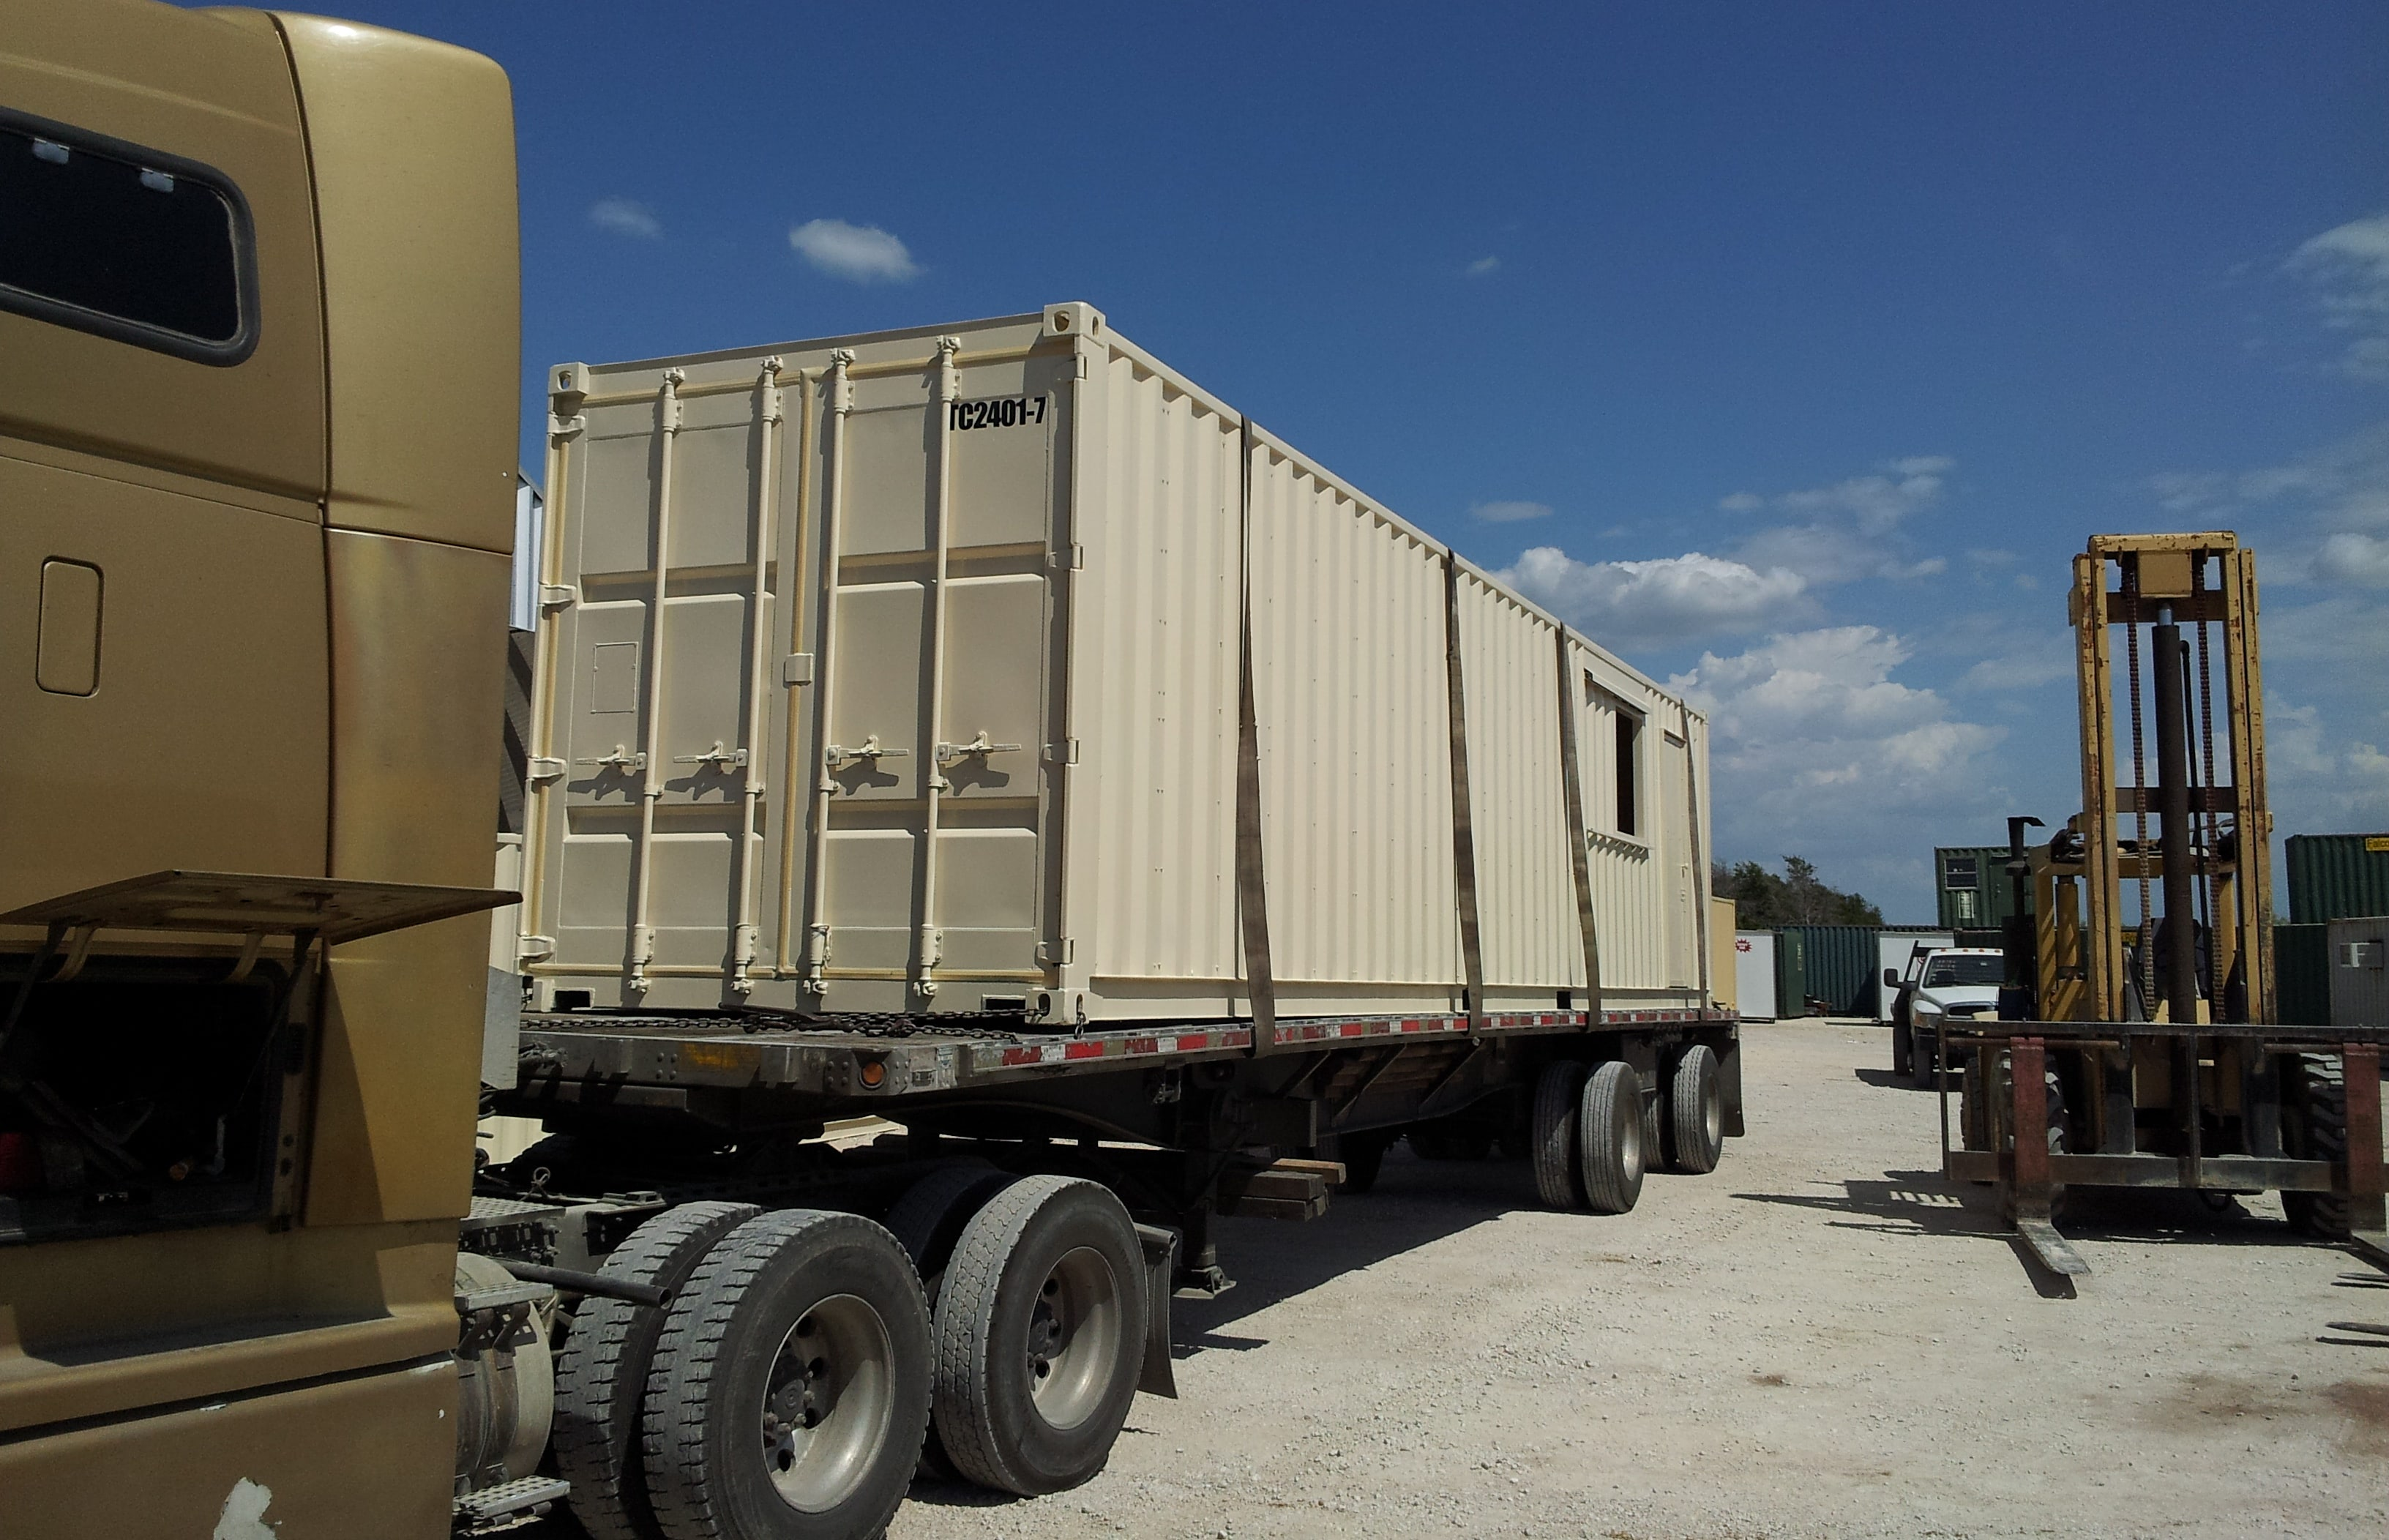 Shipping container on truck ready to be delivered.